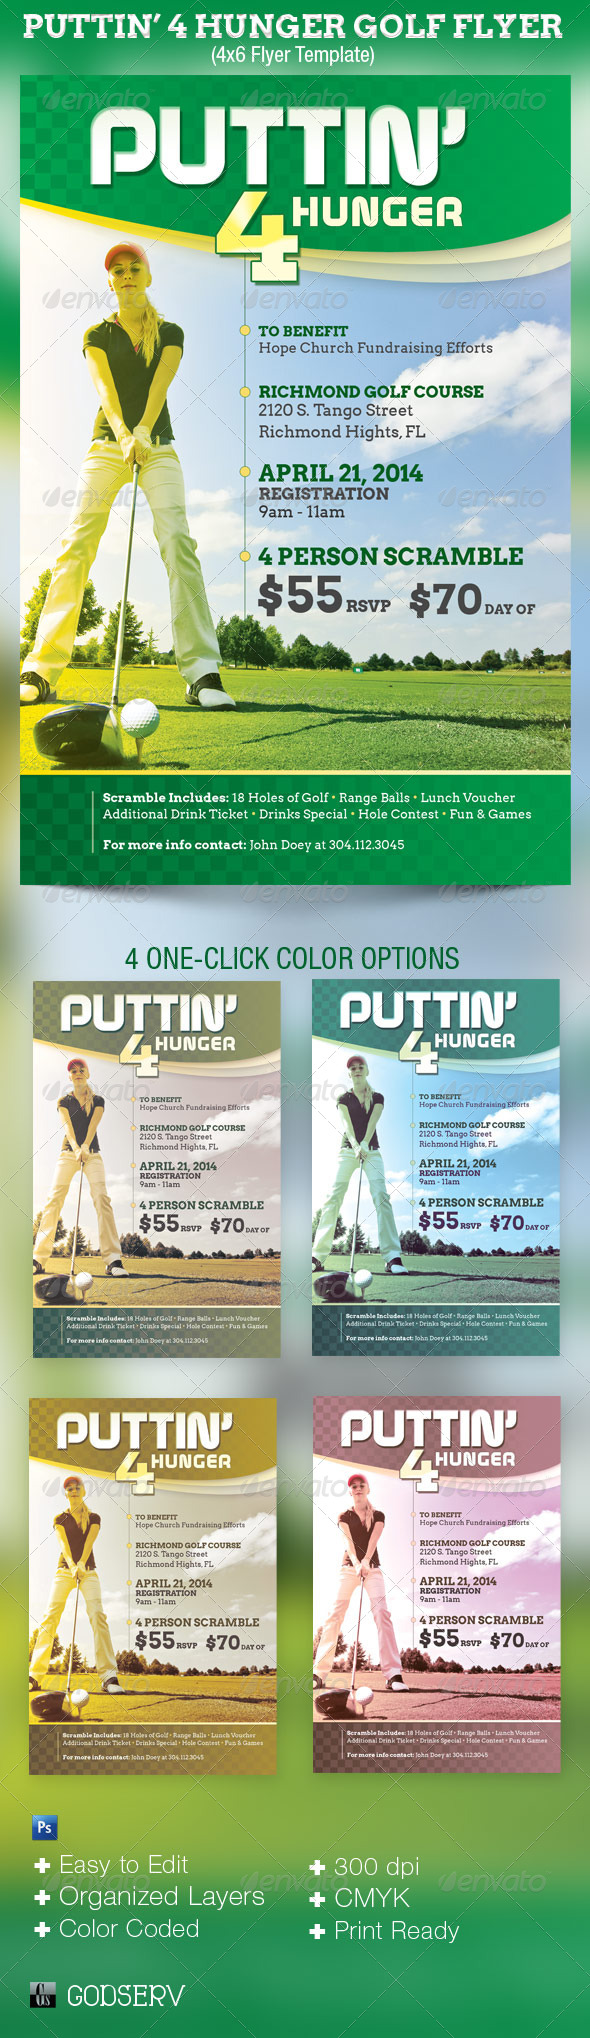 Puttin 4 Hunger Charity Golf Flyer Template - Sports Events